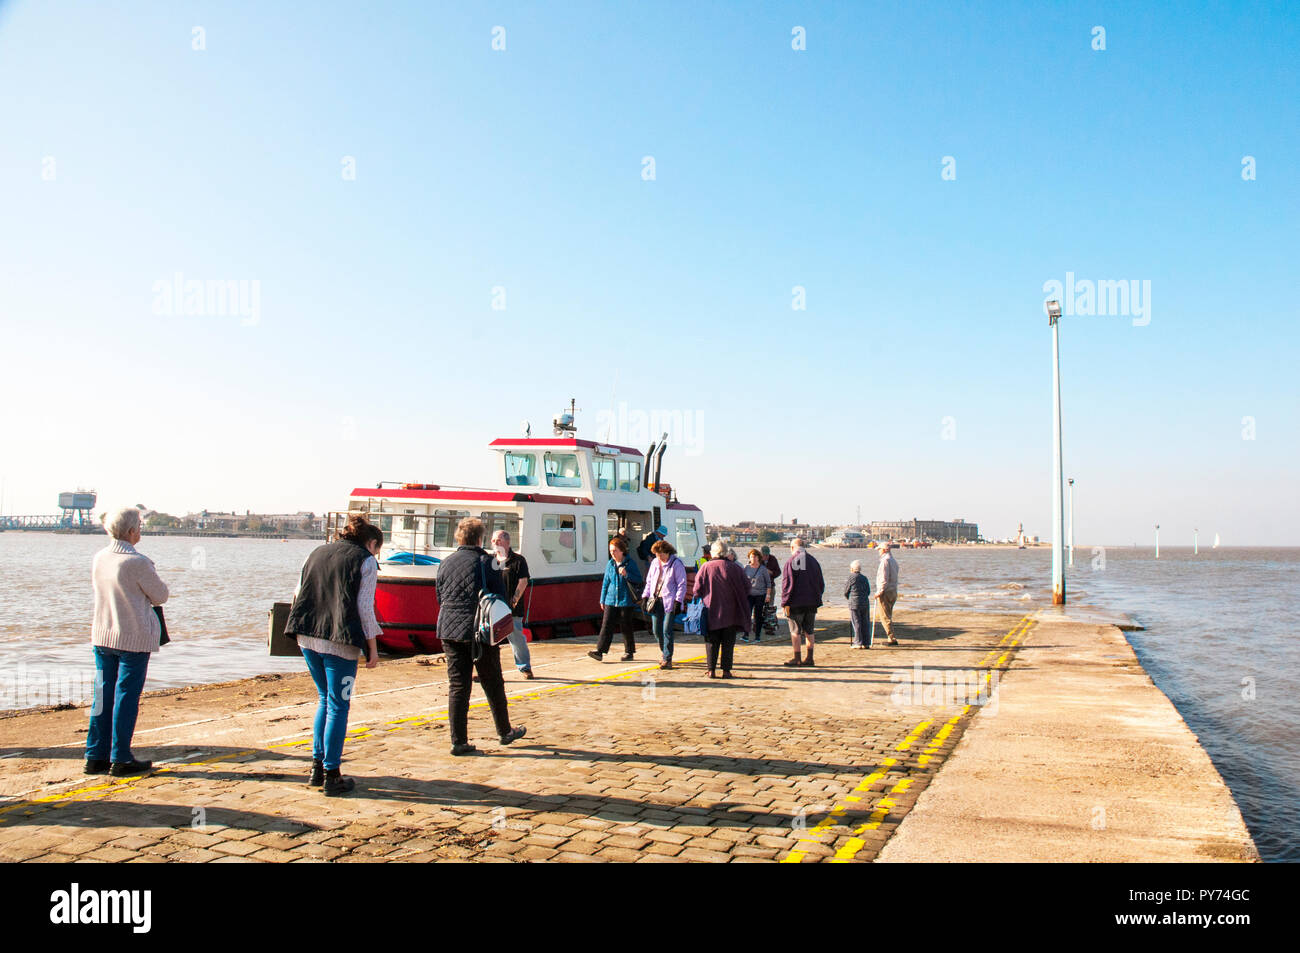 People disembarking whilst others wait to embark on the Fleetwood to Knot End on Sea ferry on Knott End slipway. Lancashire England UK - Stock Image